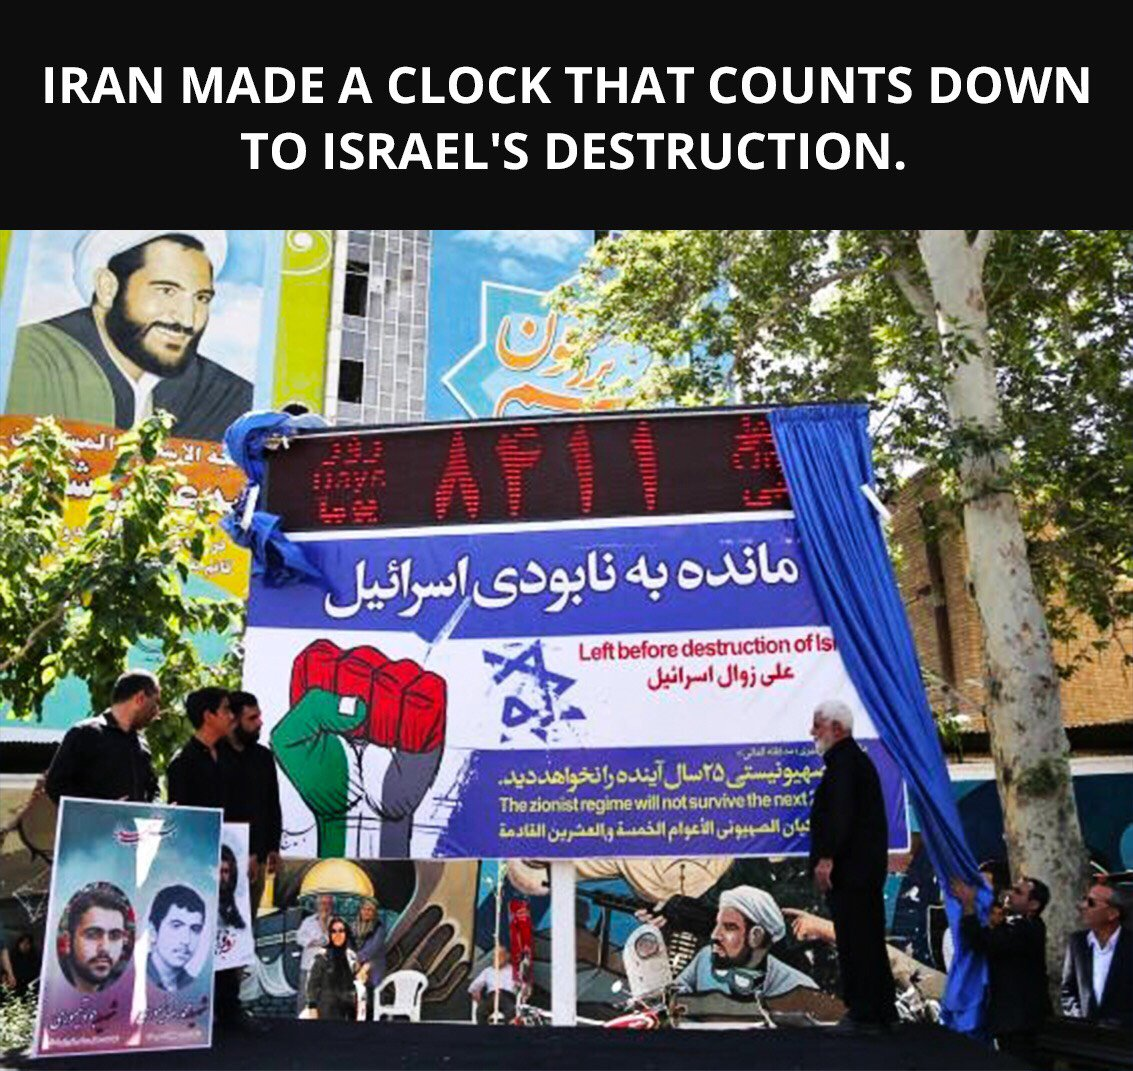 We were here long before the Ayatollahs took the Iranian people hostage, and we'll be here long after their regime is a footnote of history.